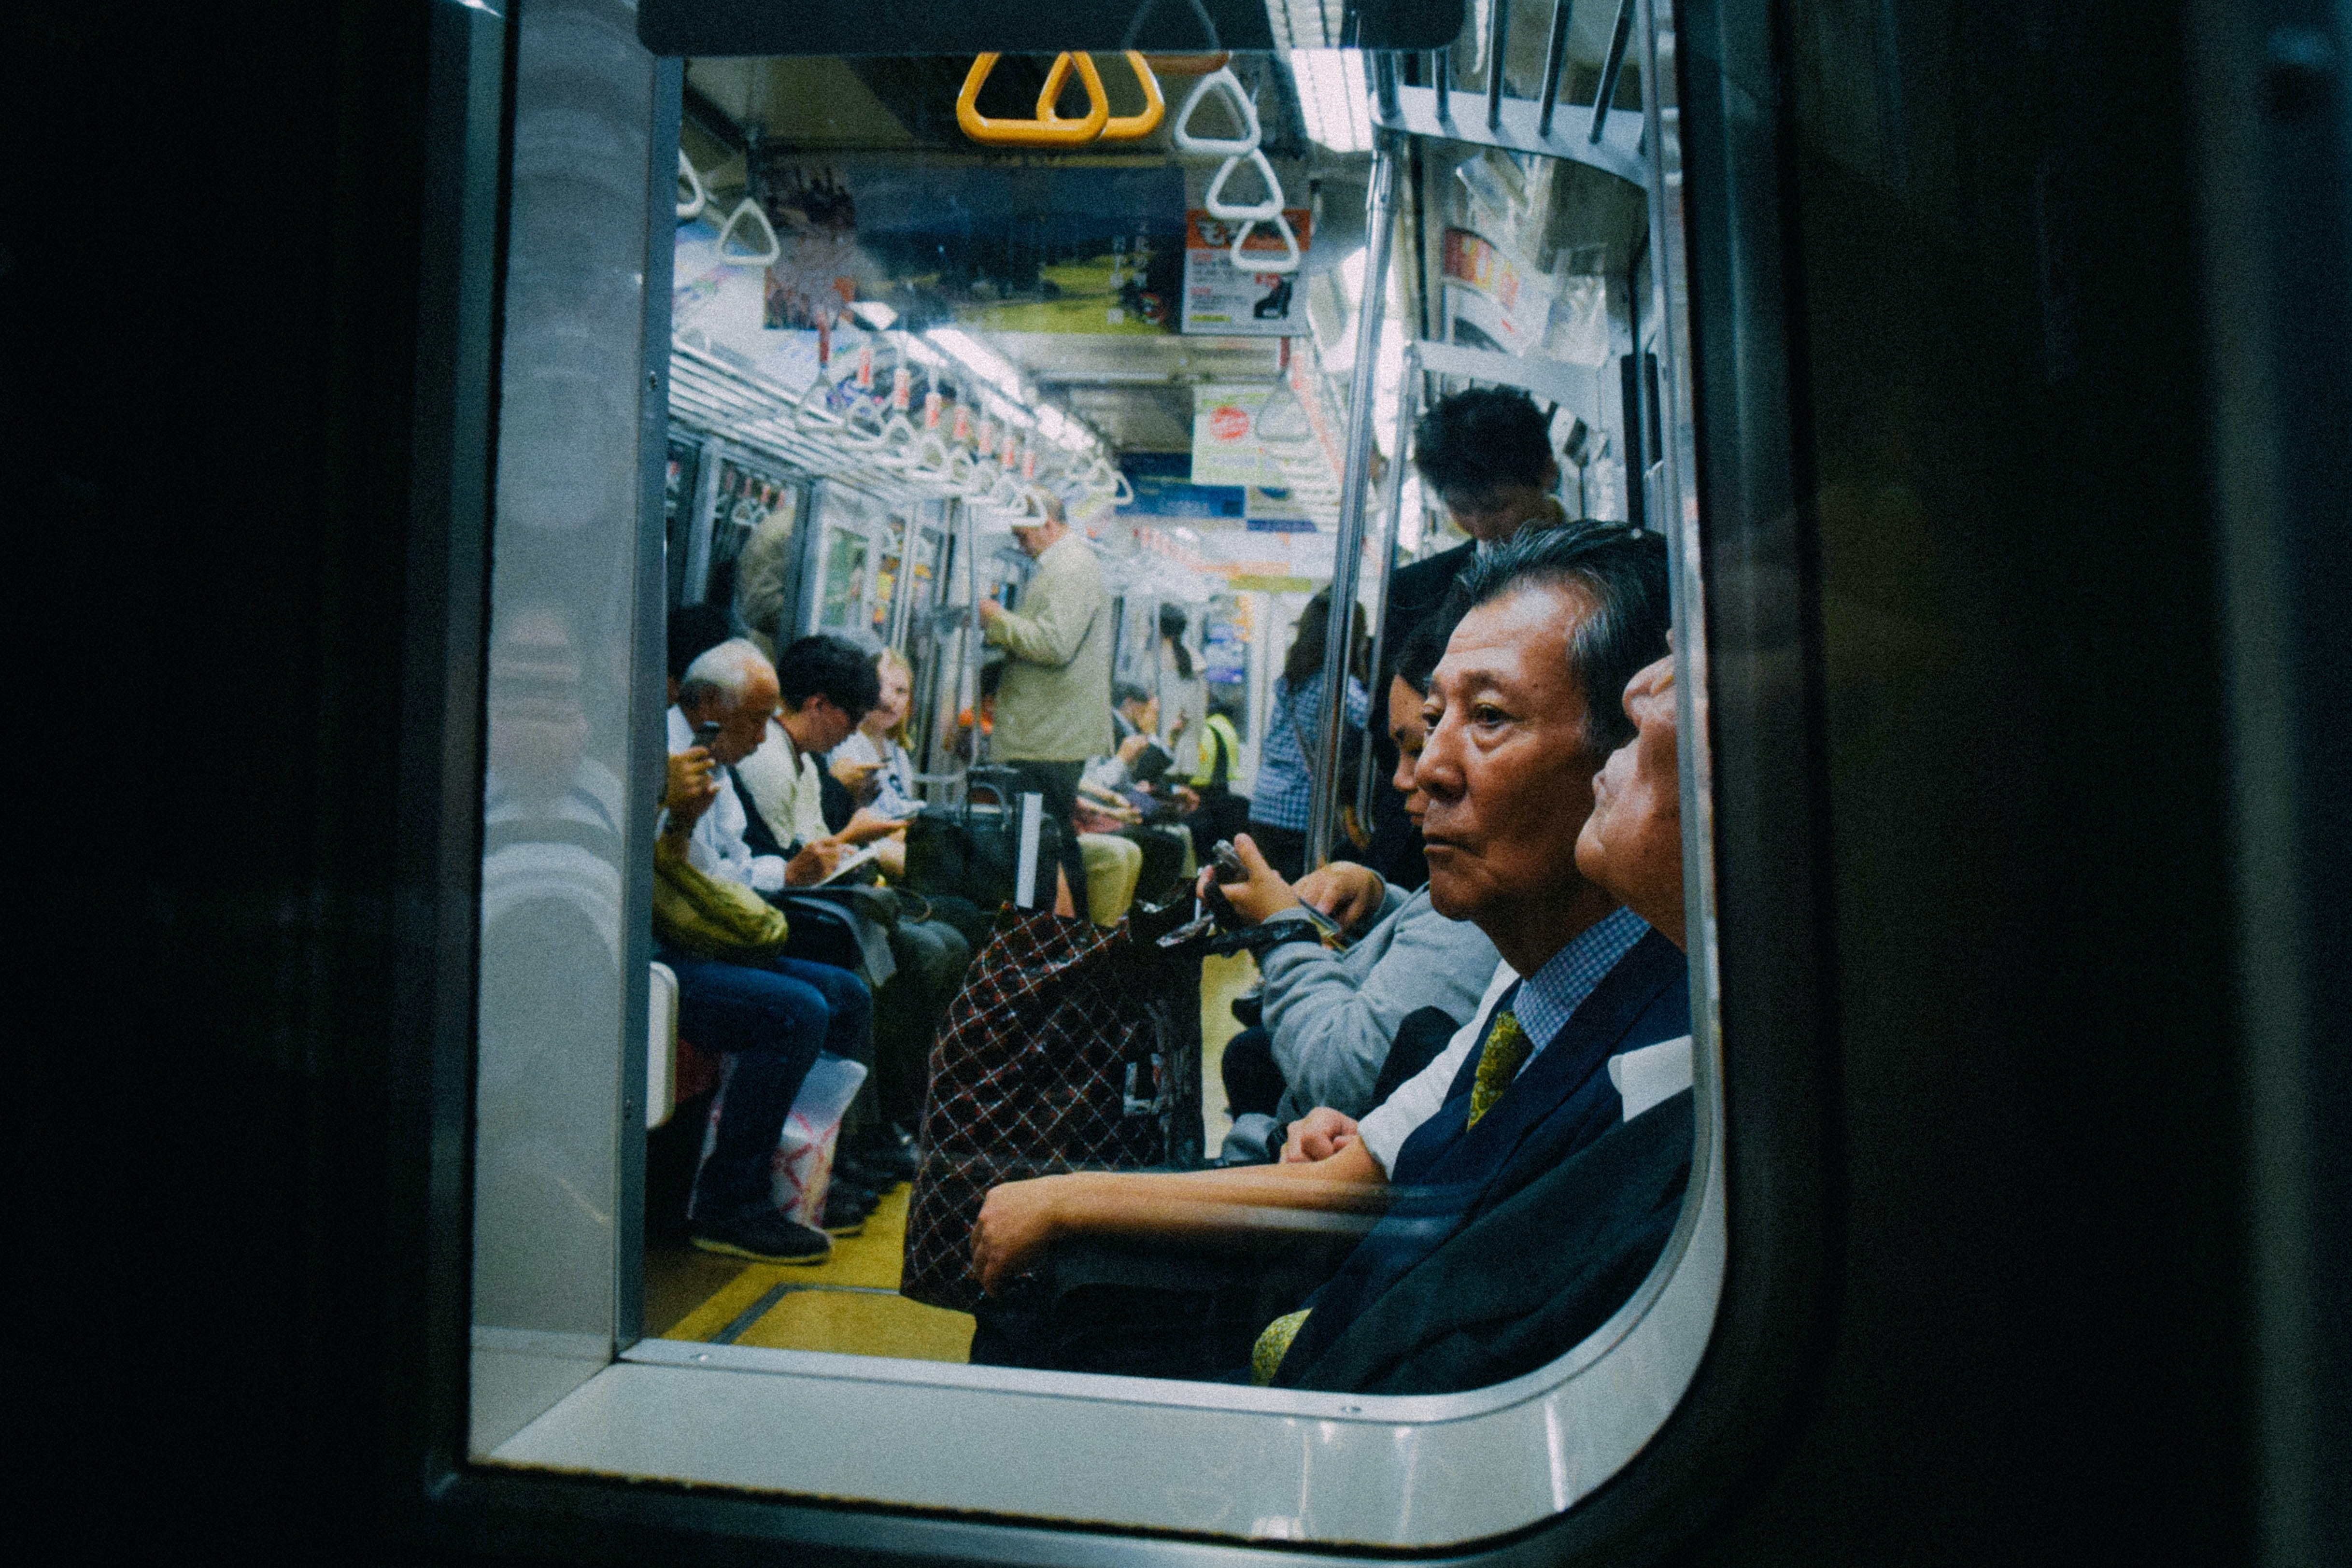 A subway car with passengers.